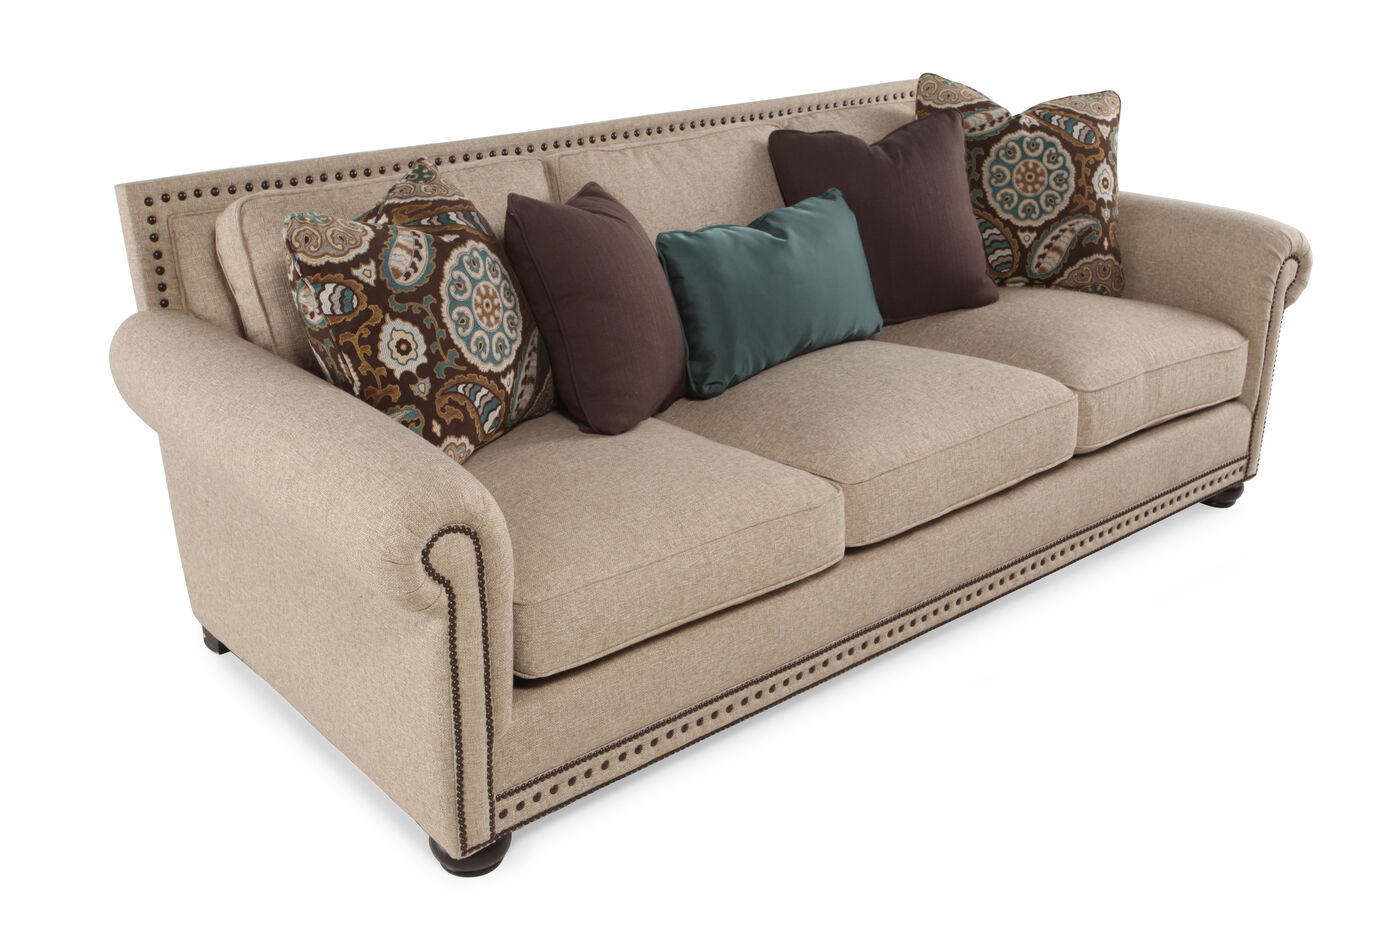 Bernhardt caroline sofa mathis brothers furniture for Where to buy bernhardt furniture online